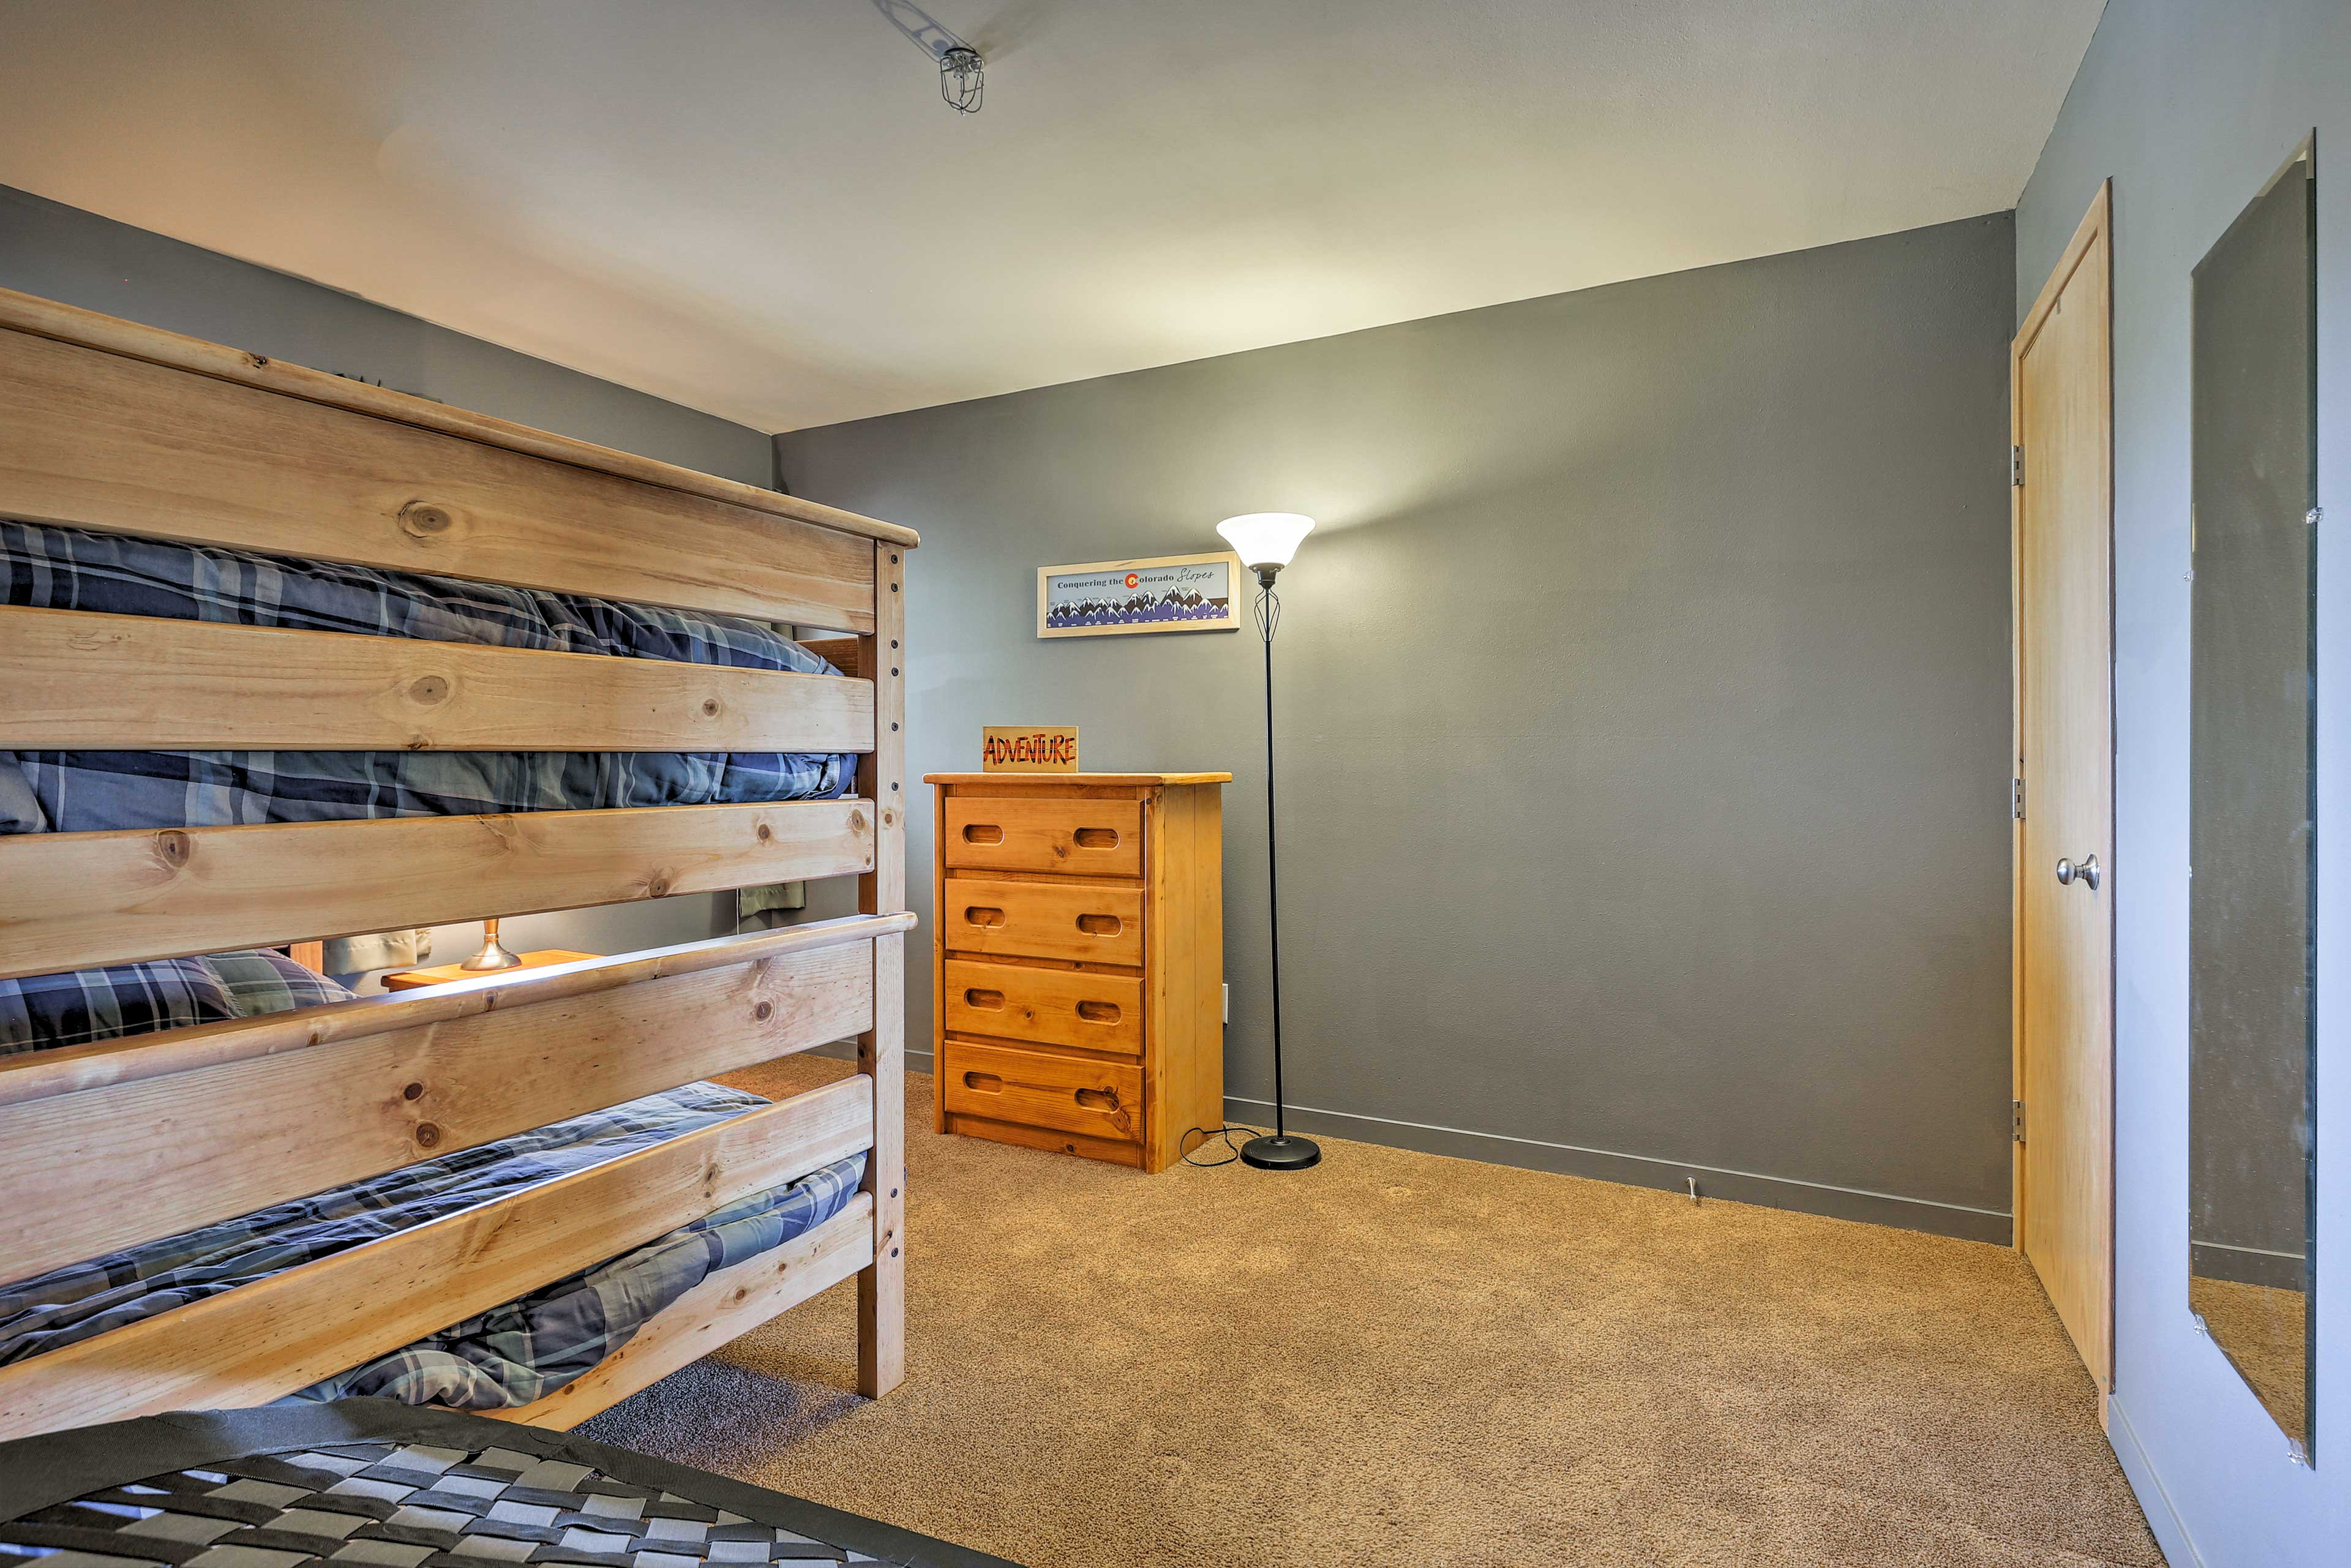 The kiddos will love a space all their own in the second bedroom.